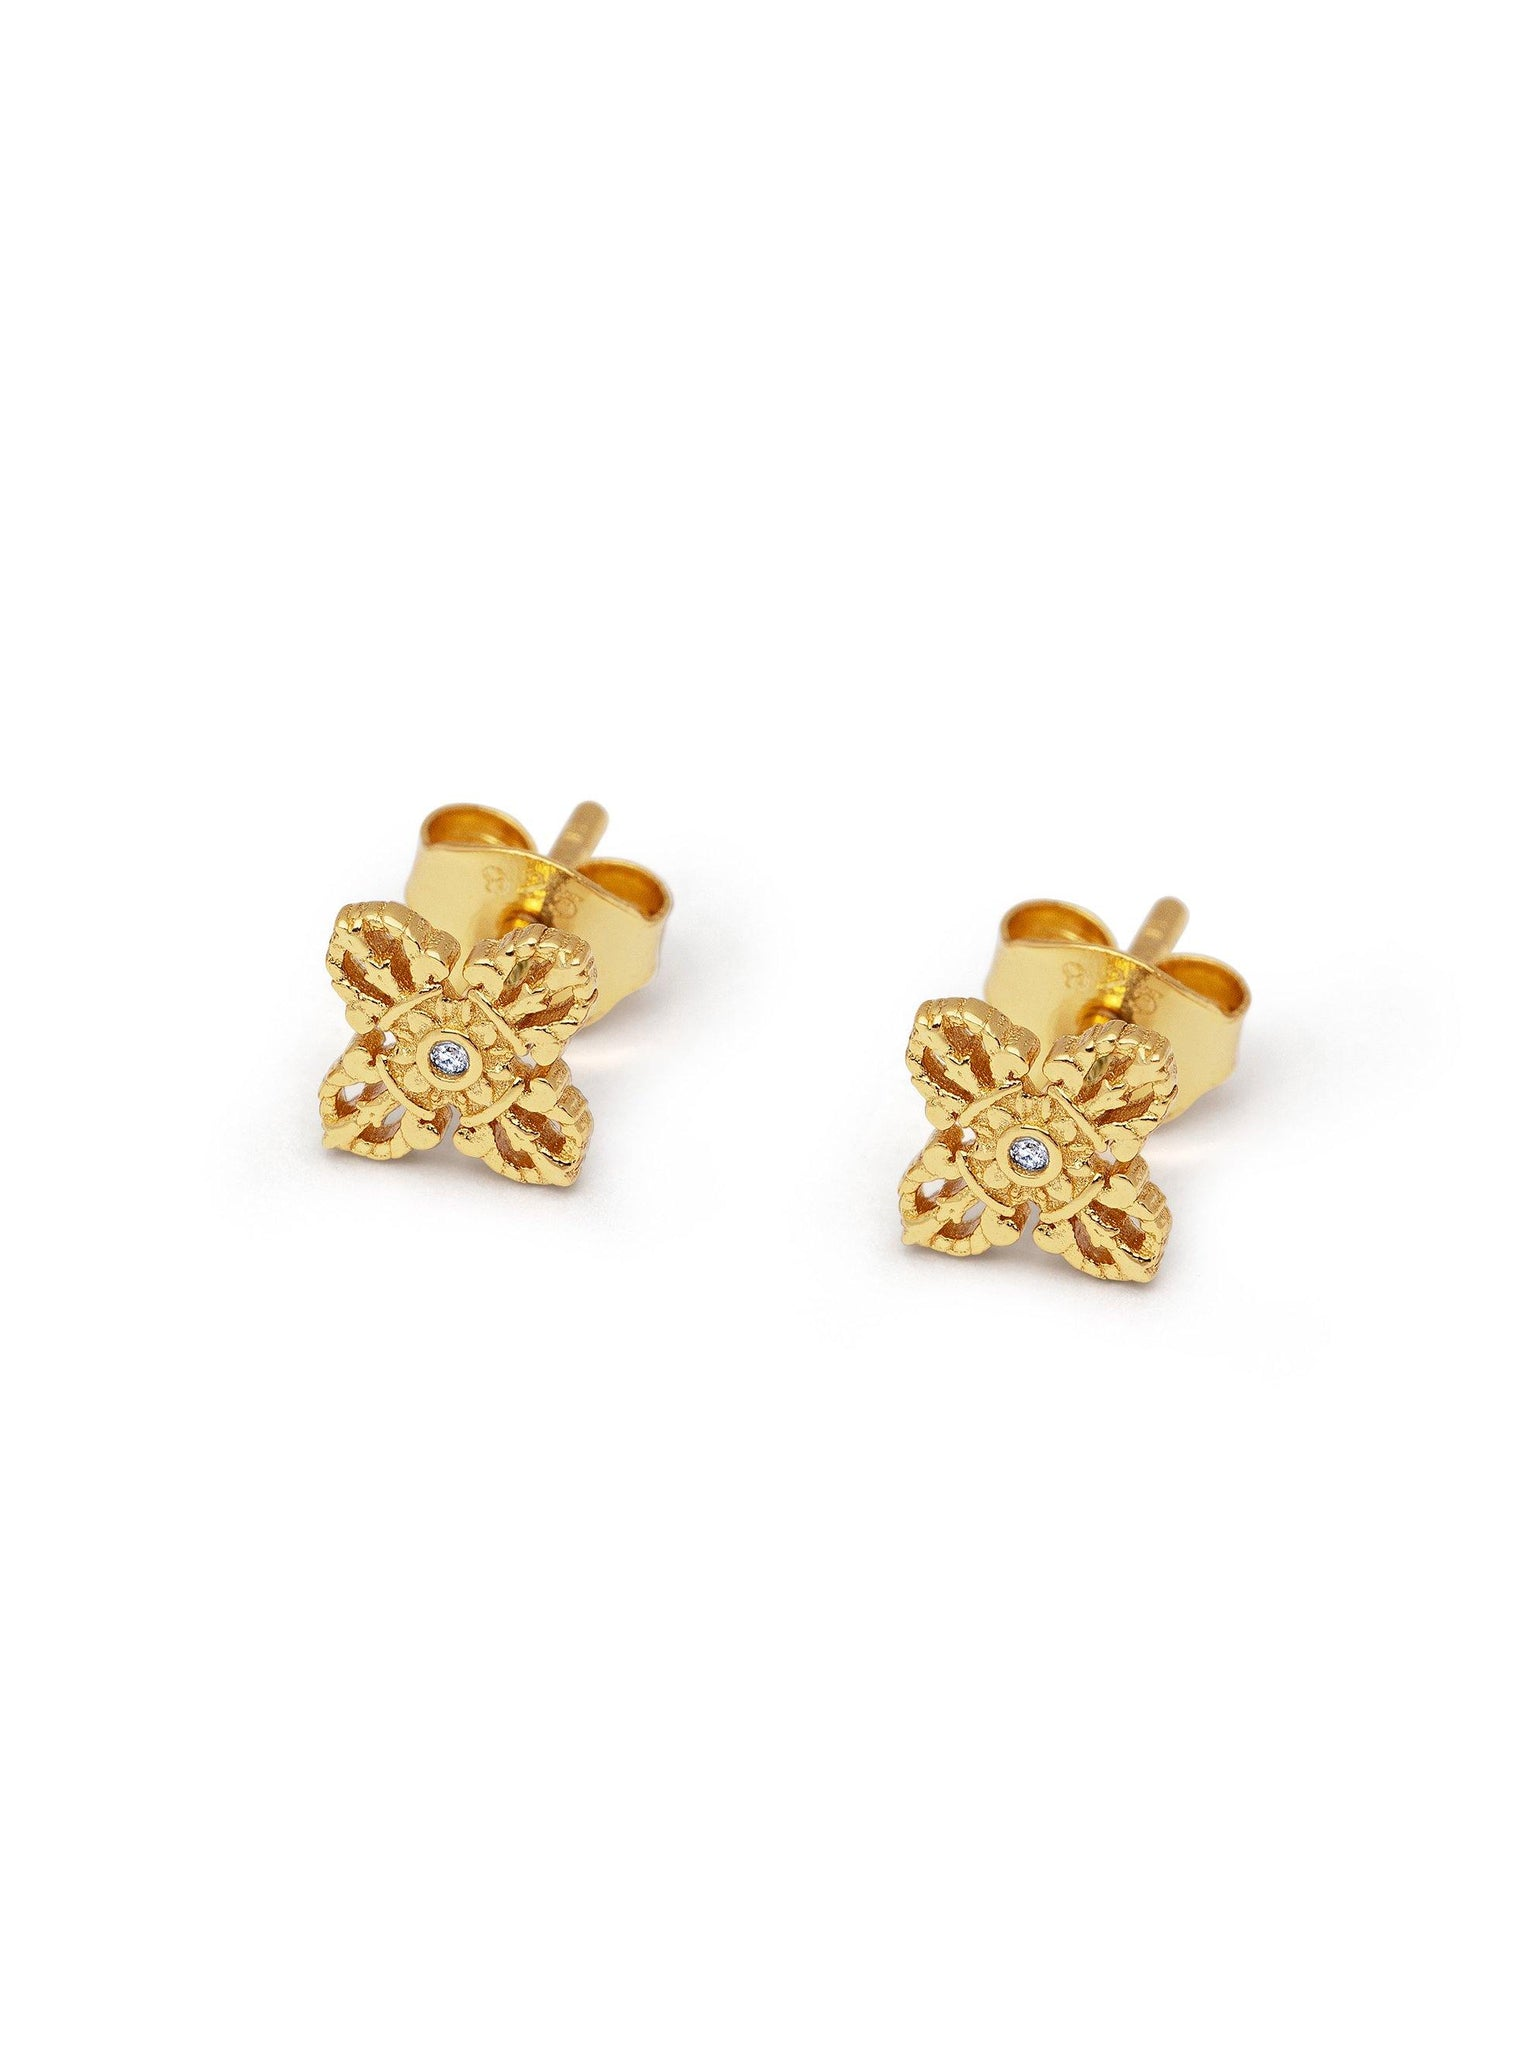 Women's Sterling Silver Mini Dorje Studs - Nialaya Jewelry